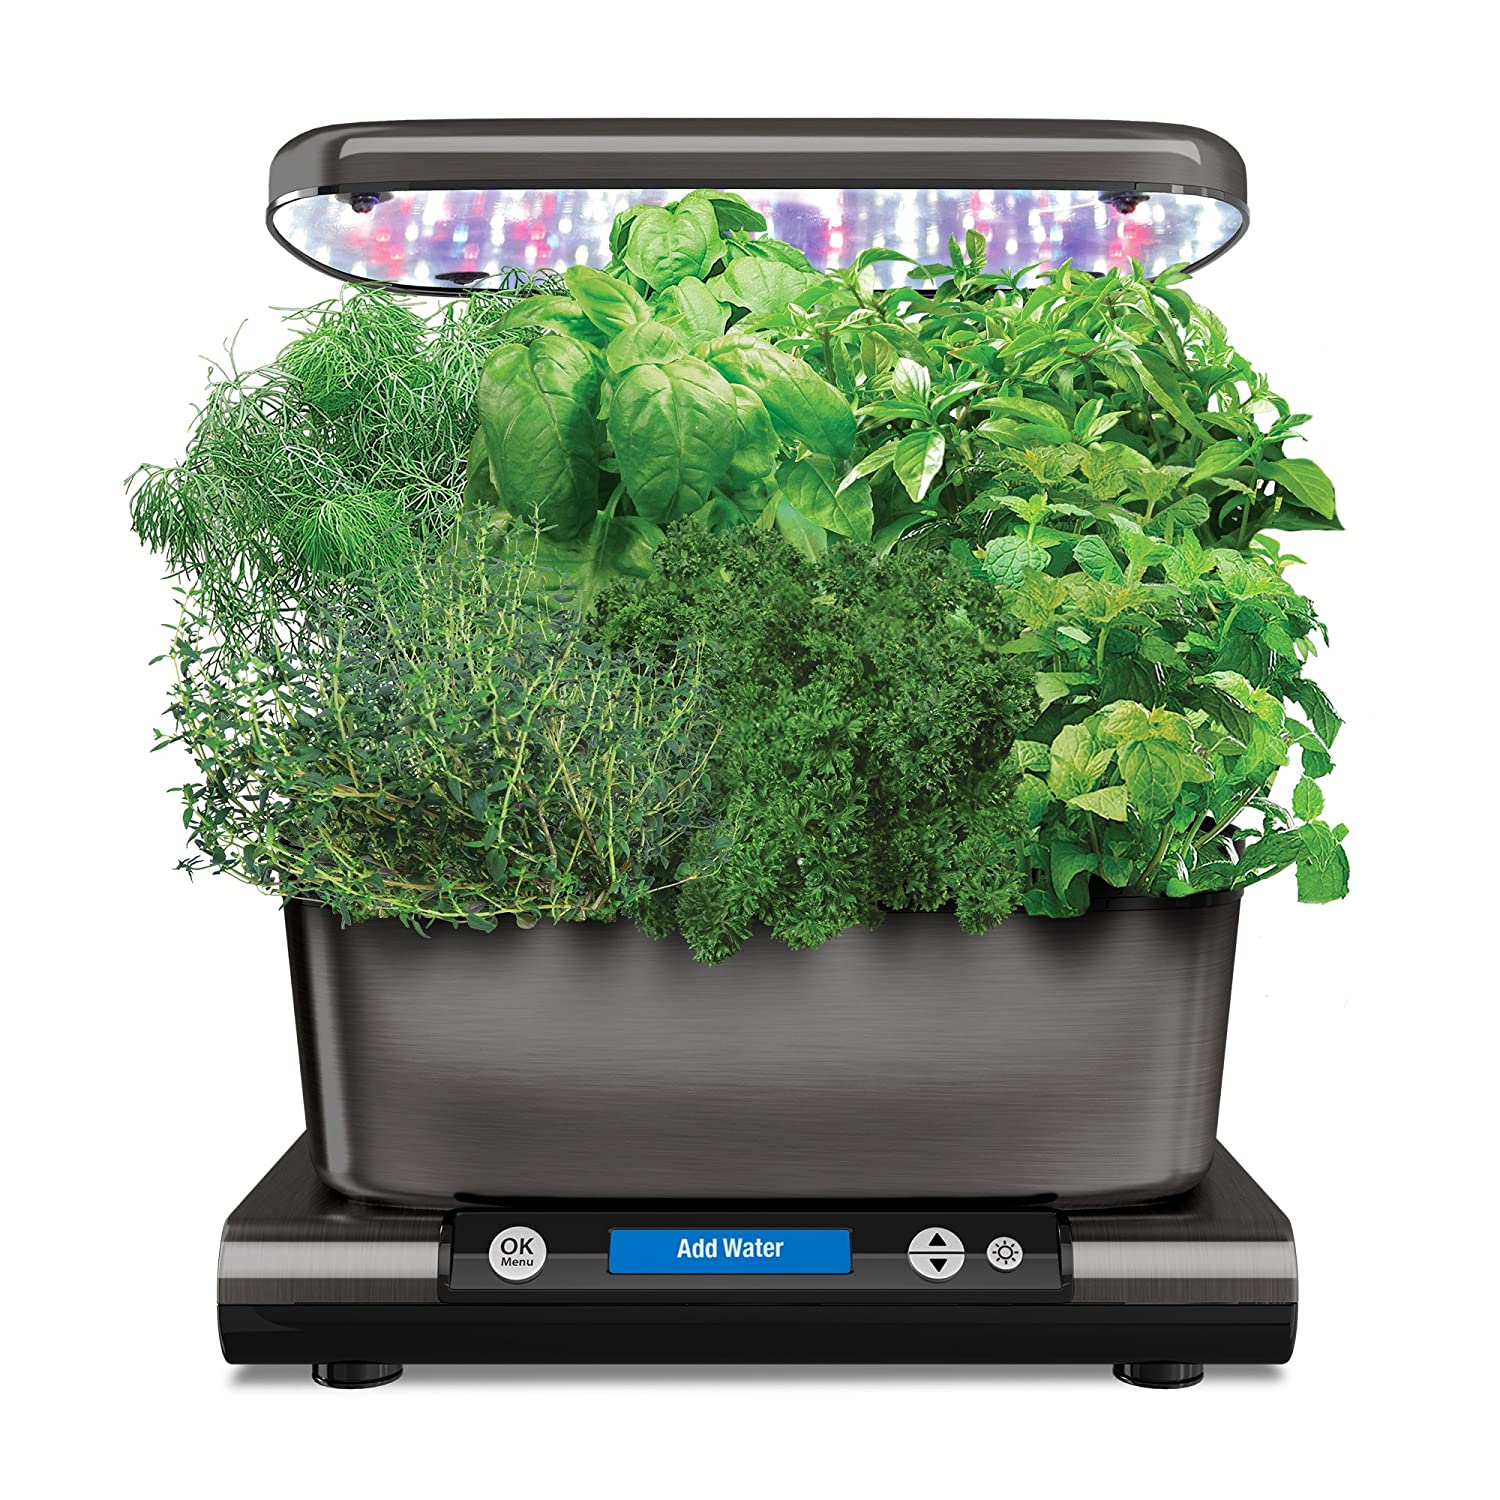 AeroGarden Harvest Elite (Classic) with Gourmet Herb Seed Pod Kit, Platinum Aerogrow 901052-1200